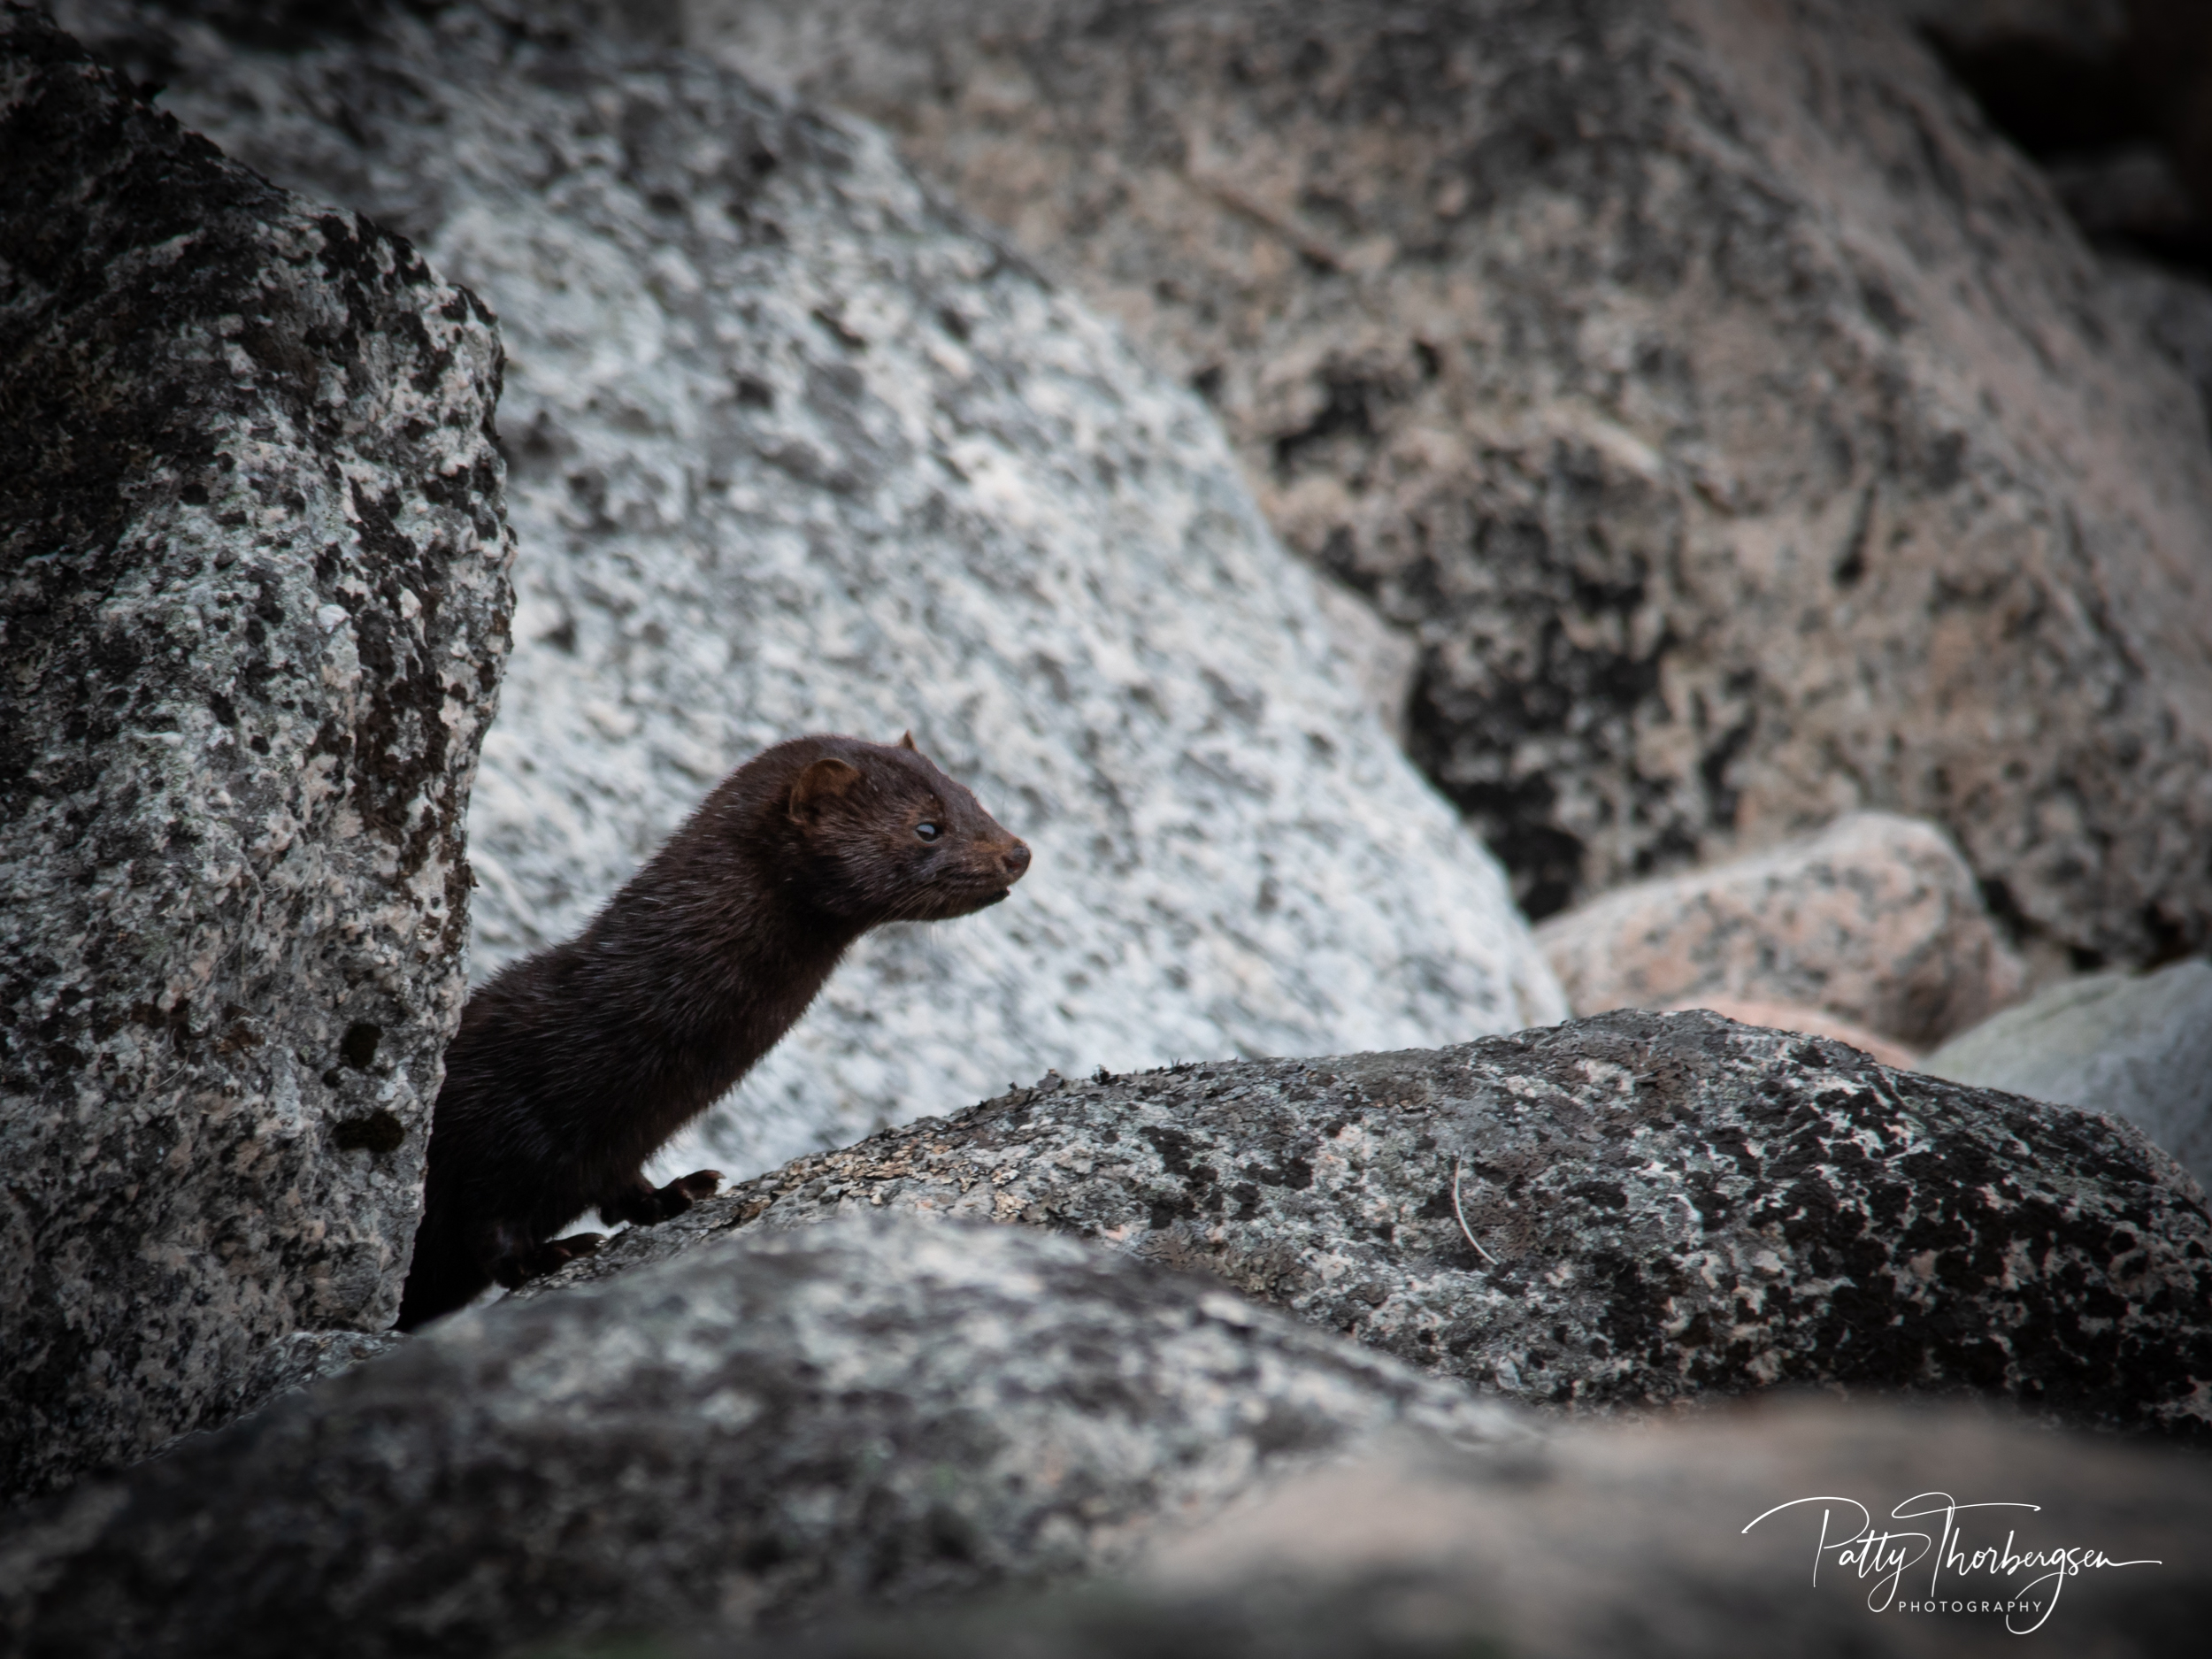 mink © Patty Thorbergsen-8864.jpg